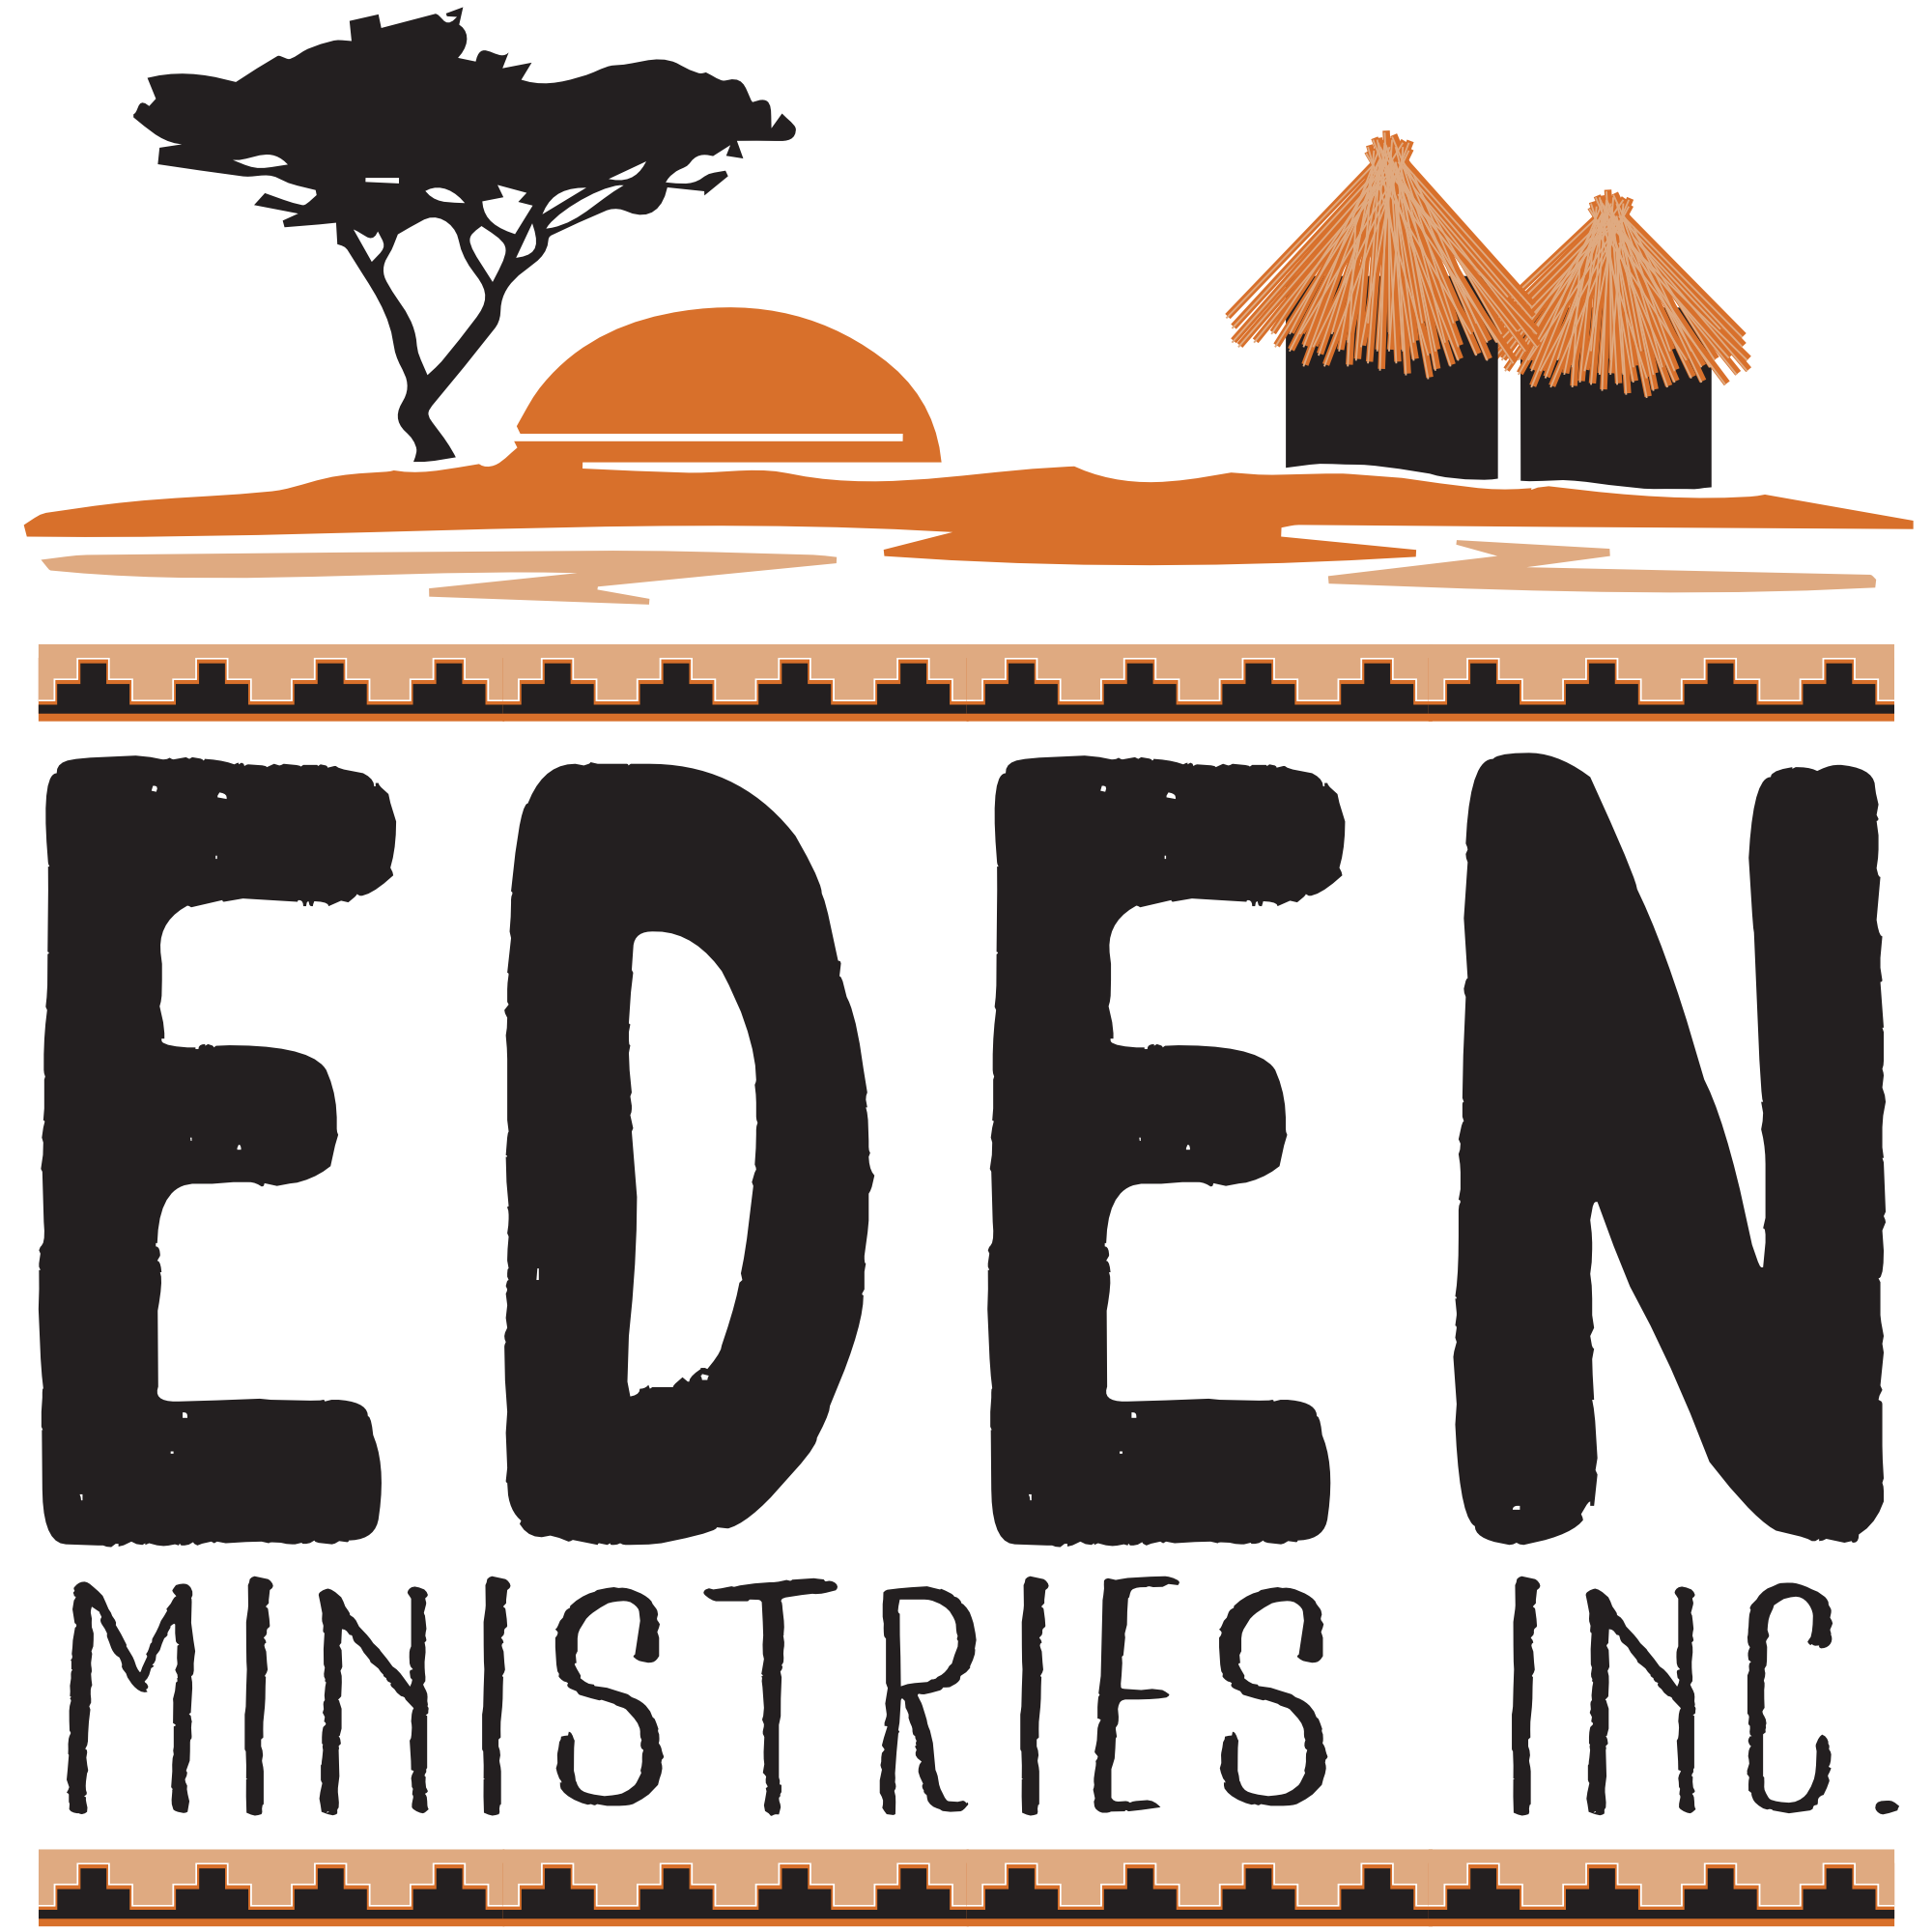 Wholistic ministry clipart picture freeuse download Eden Ministries | Impacting Lives for Eternity! picture freeuse download